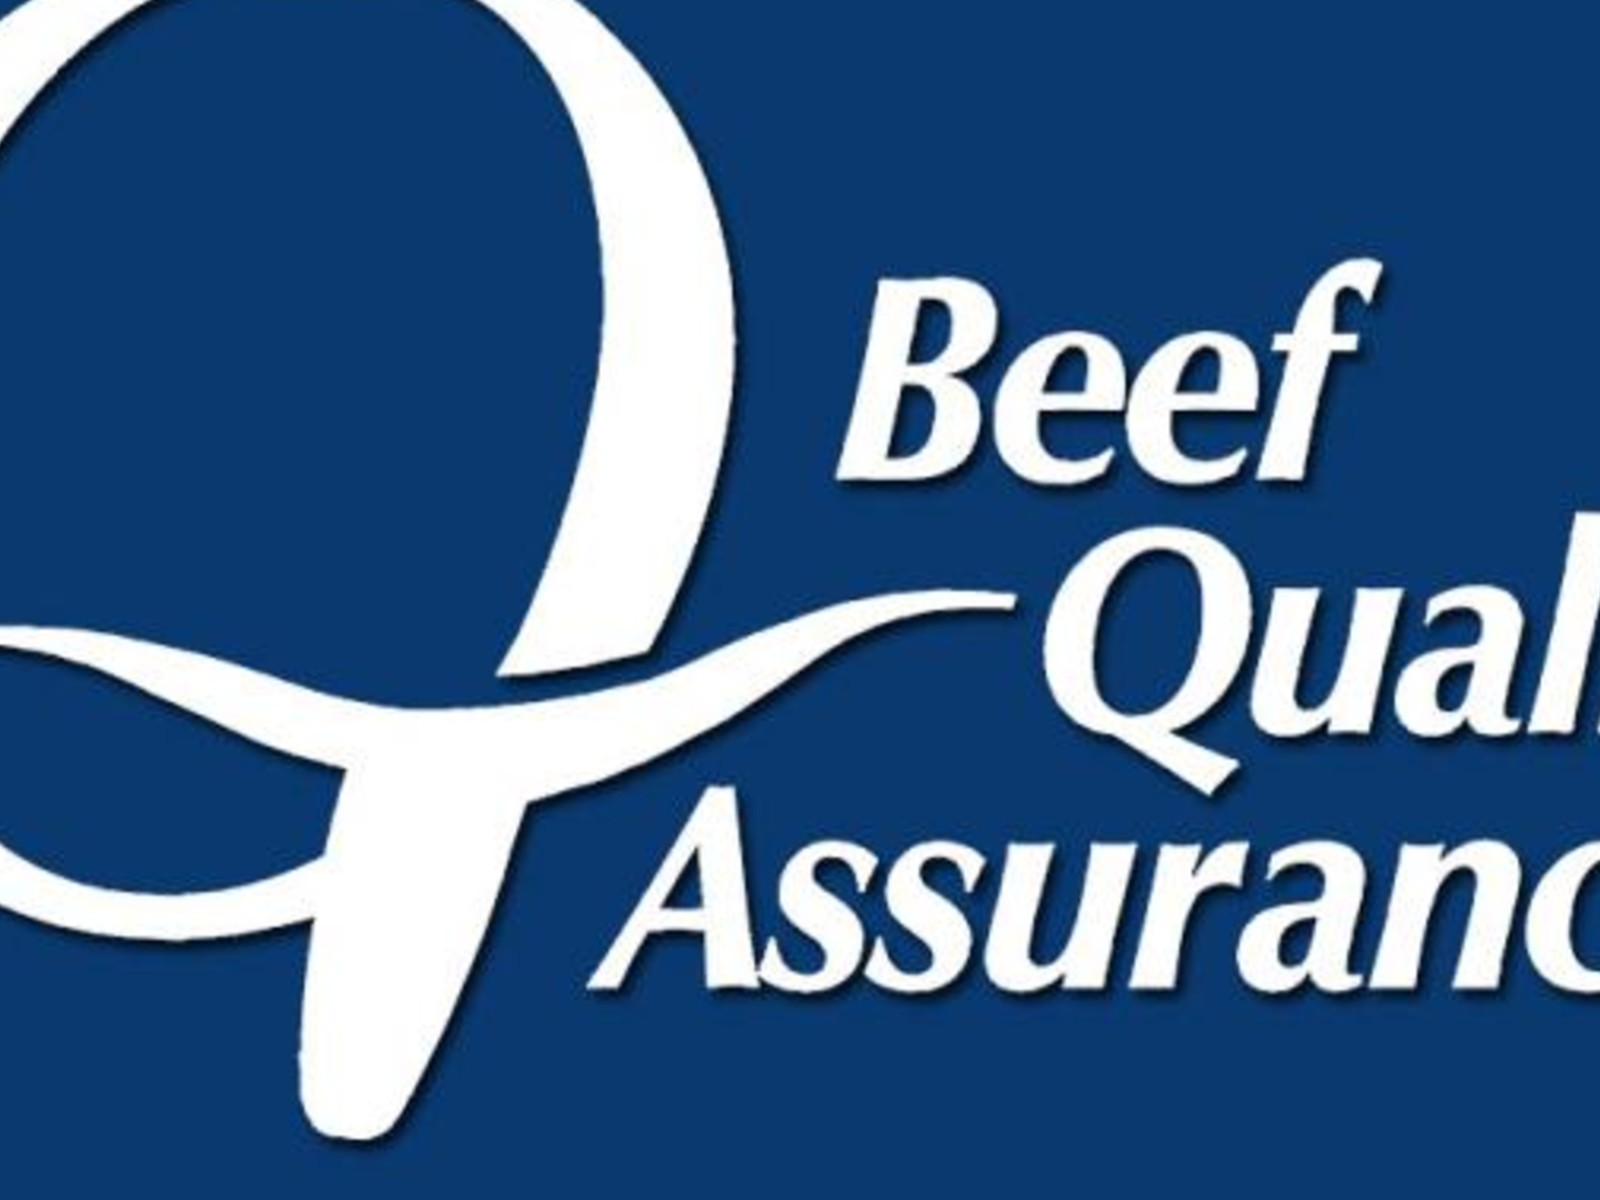 NCBA Announces 2020 Beef Quality Assurance Award Winners